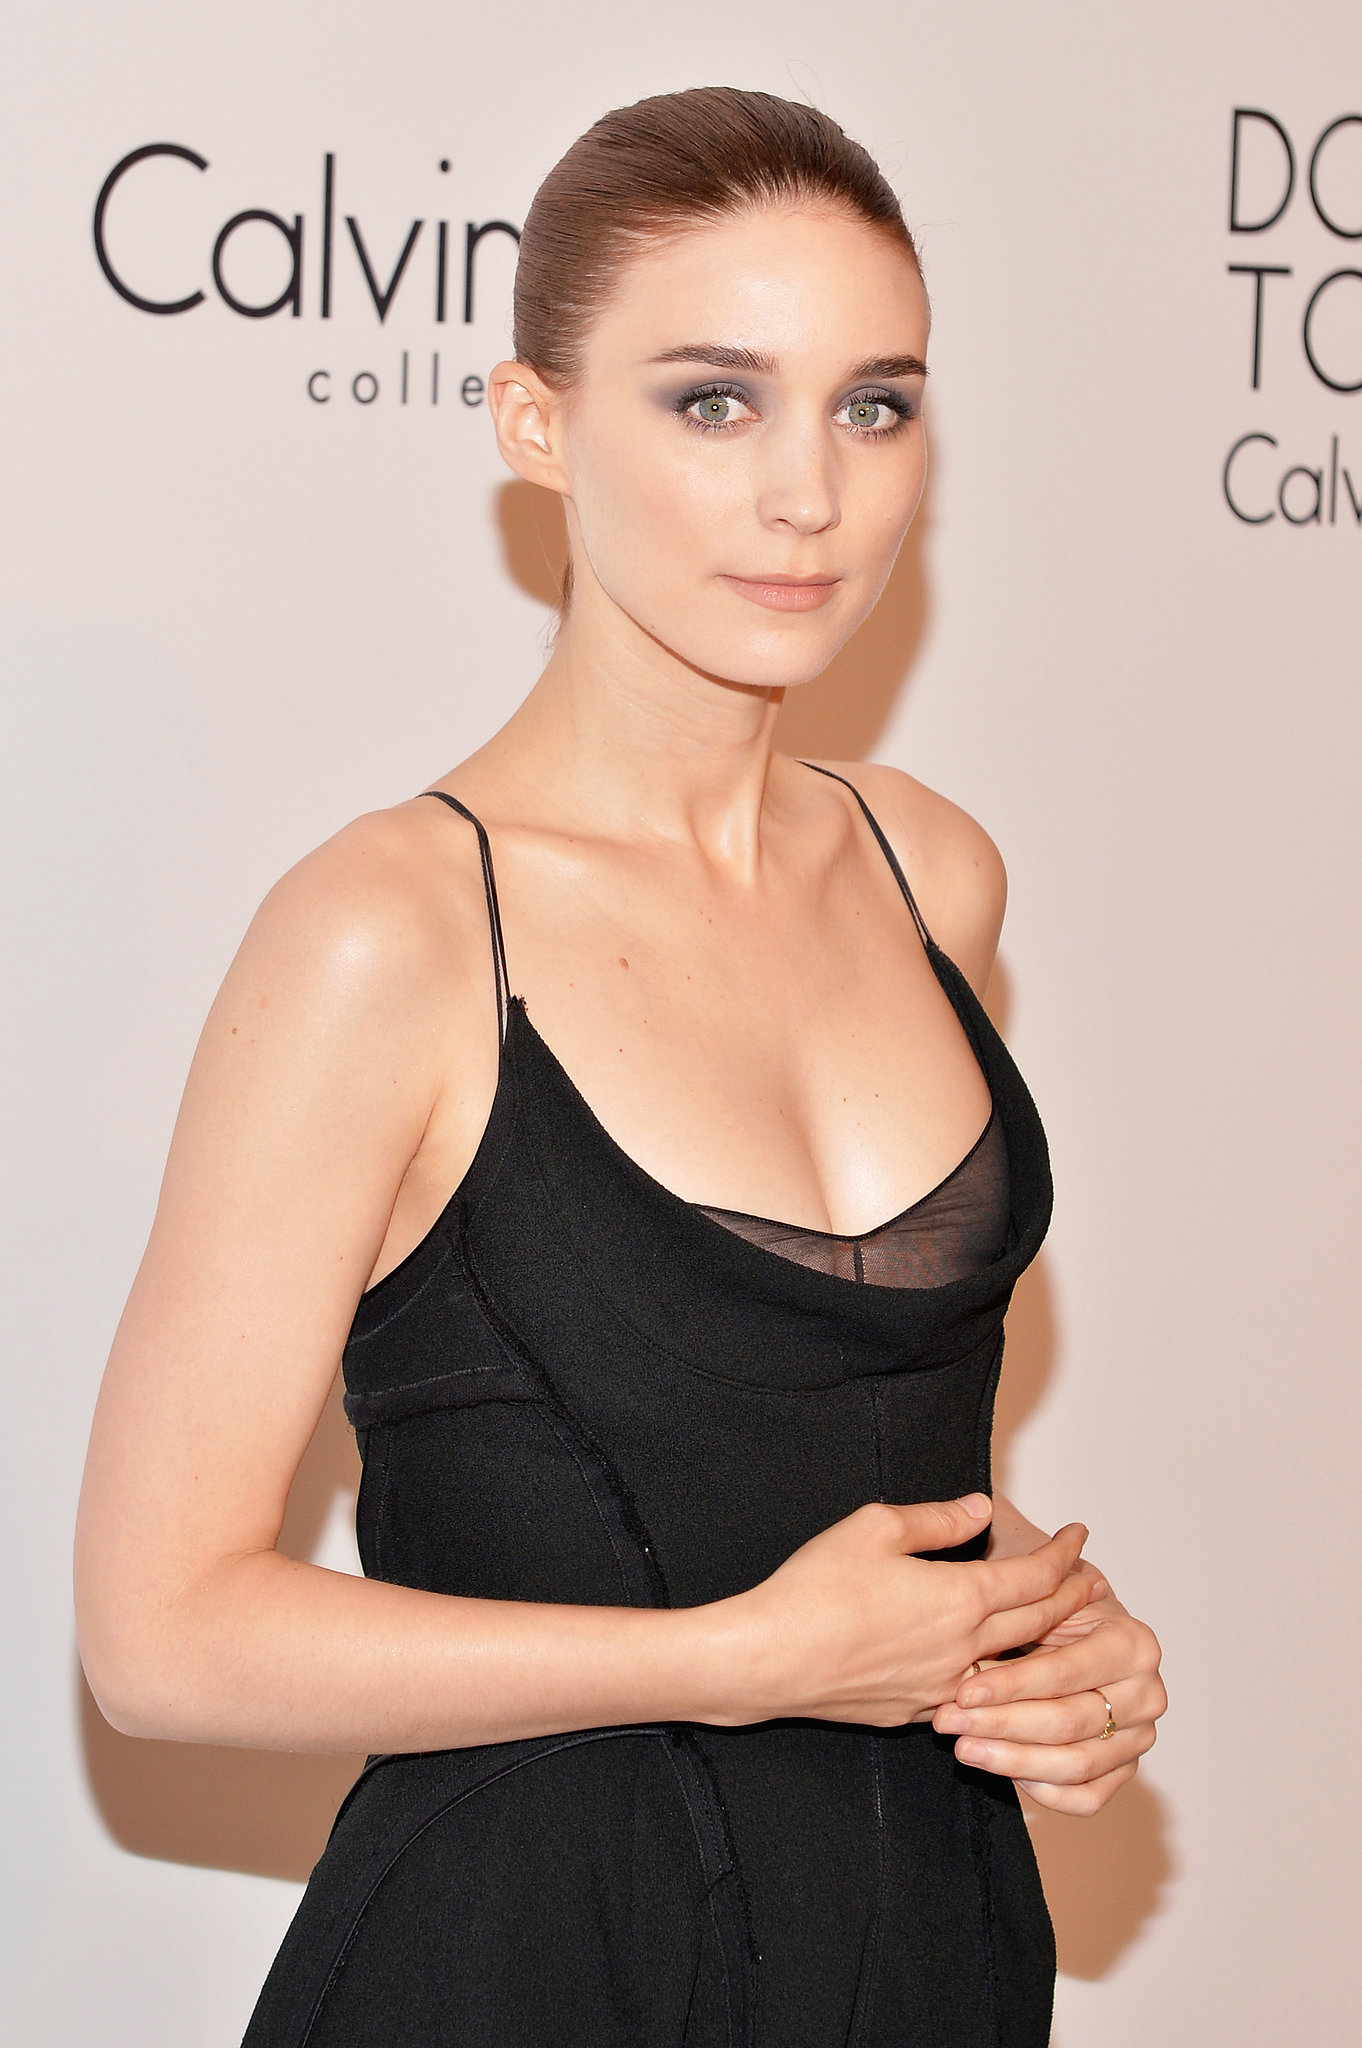 Rooney Mara at the Calvin Klein Collection Post Show Event.